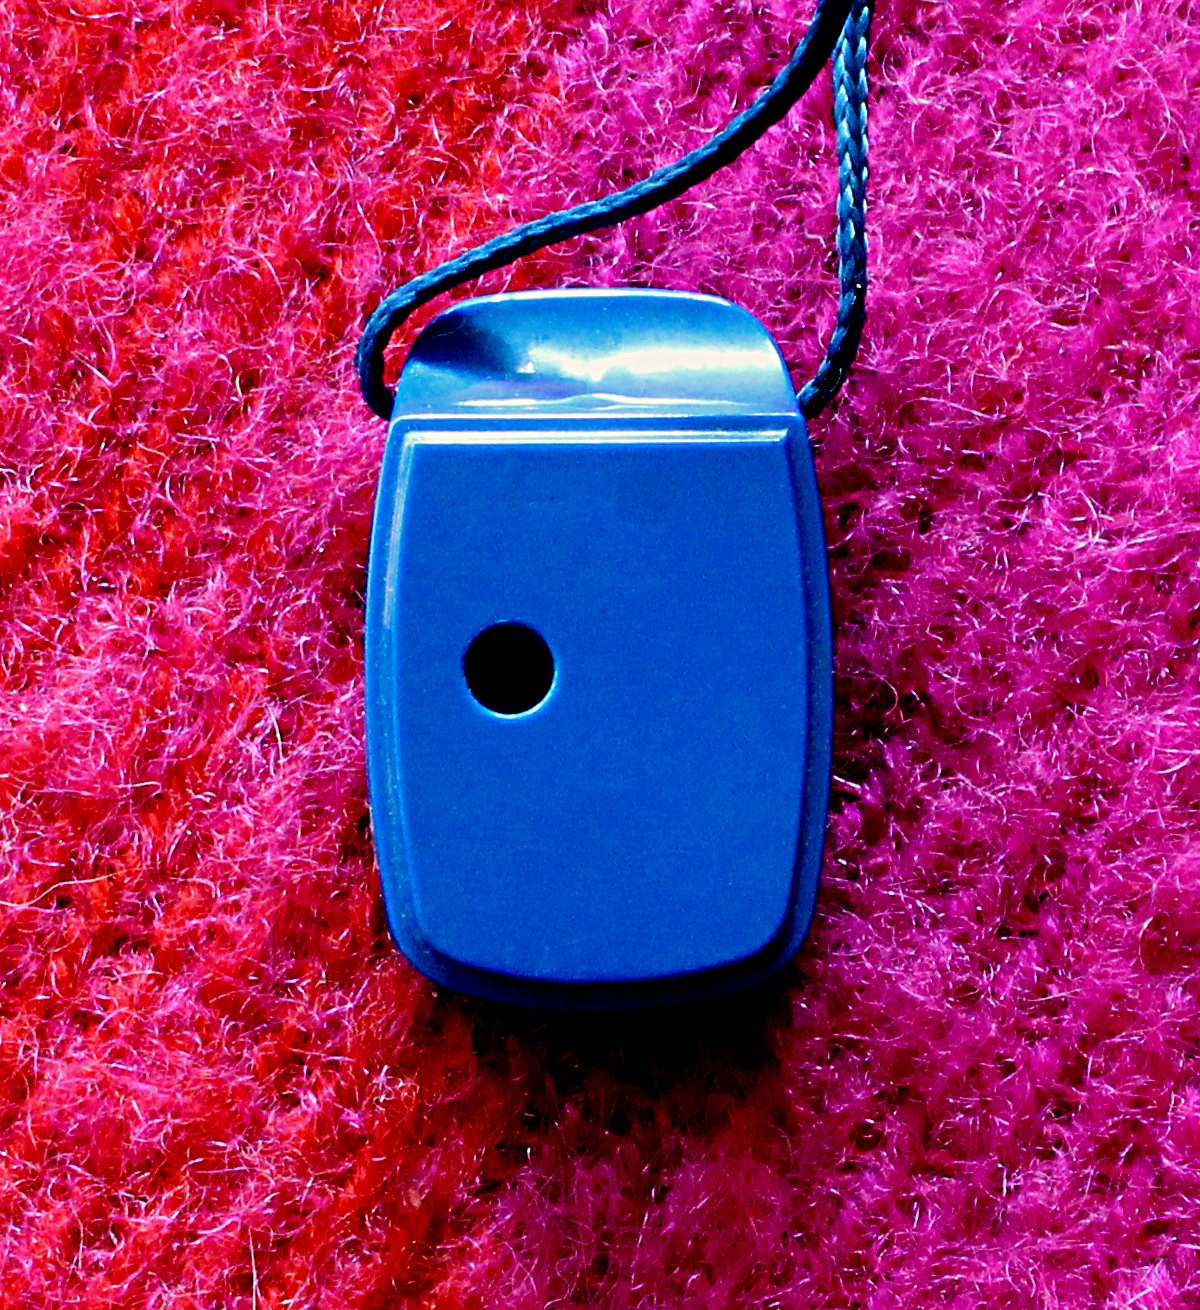 Back of a blue ocarina showing the thumb hole, laying on a red wool background.